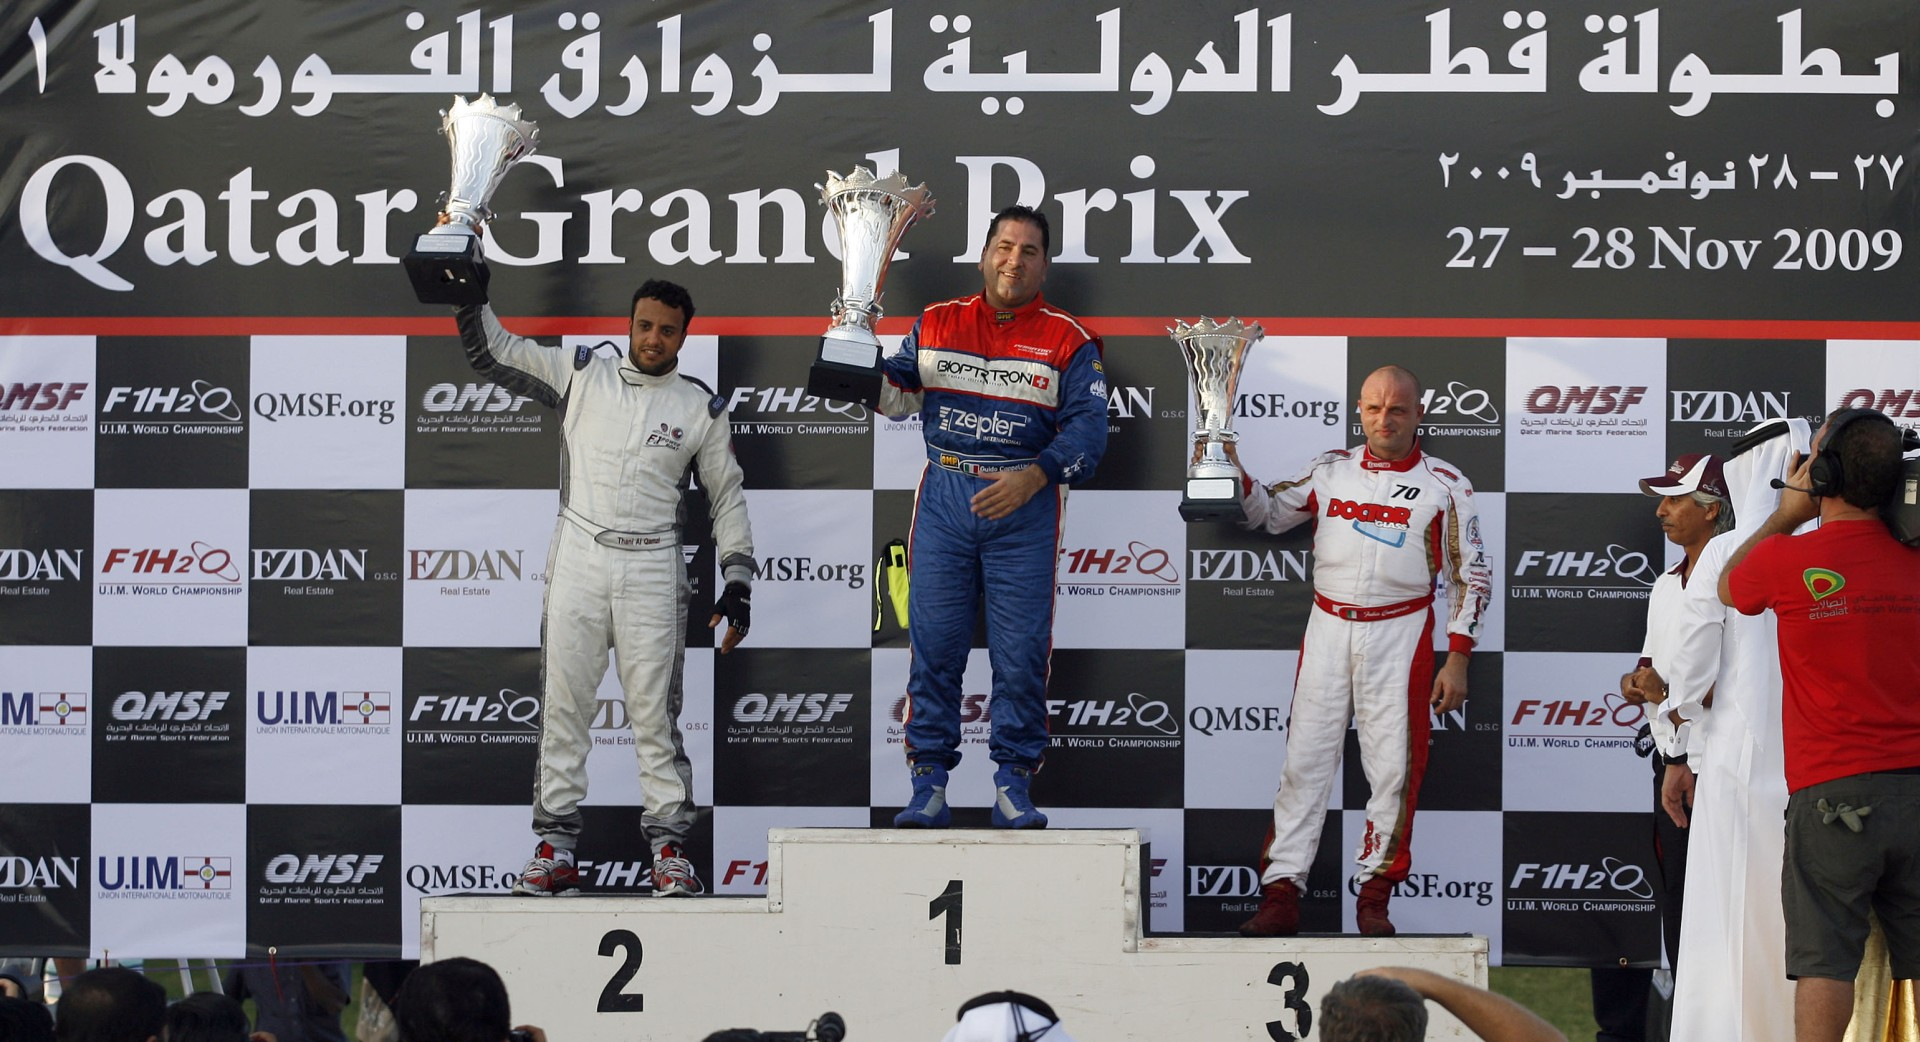 GP OF QATAR-271109-Podium of race one the UIM F1 Powerboat Grand Prix of Qatar, on the Doha Corniche, Doha, Qatar, the race days are November 27-28, 2009. From left to right, Al Thani Qamzi of UAE, 2nd place, Guido Cappellini of Italy, 1st place and Fabio Comparato of Italy in the 3rd place. Picture by Paul Lakatos/Idea Marketing.